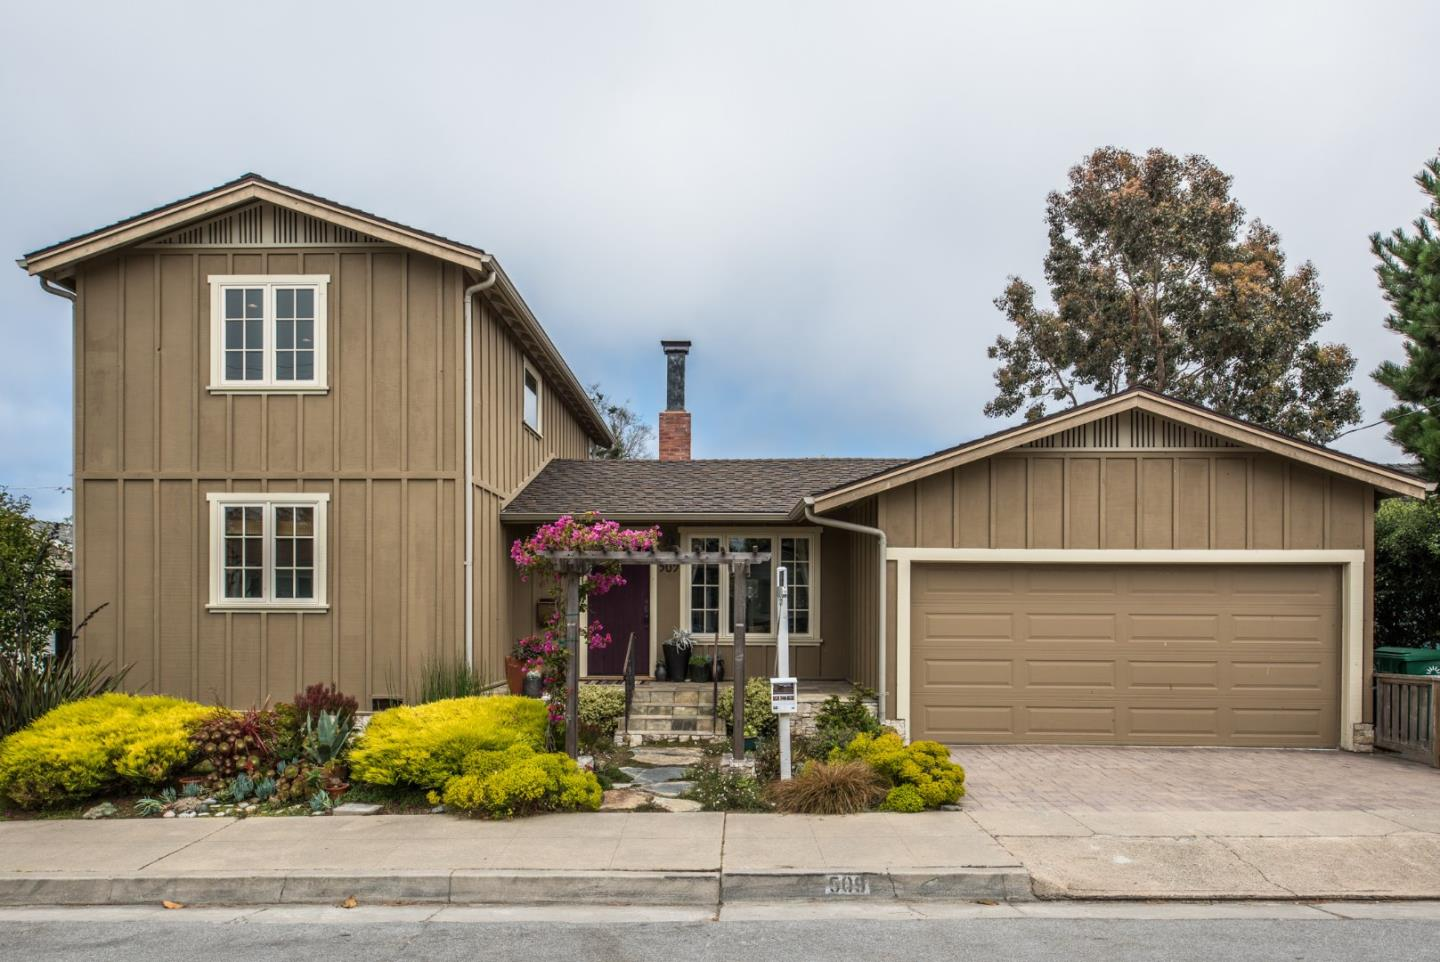 509 Willow Street, Pacific Grove, CA 93950